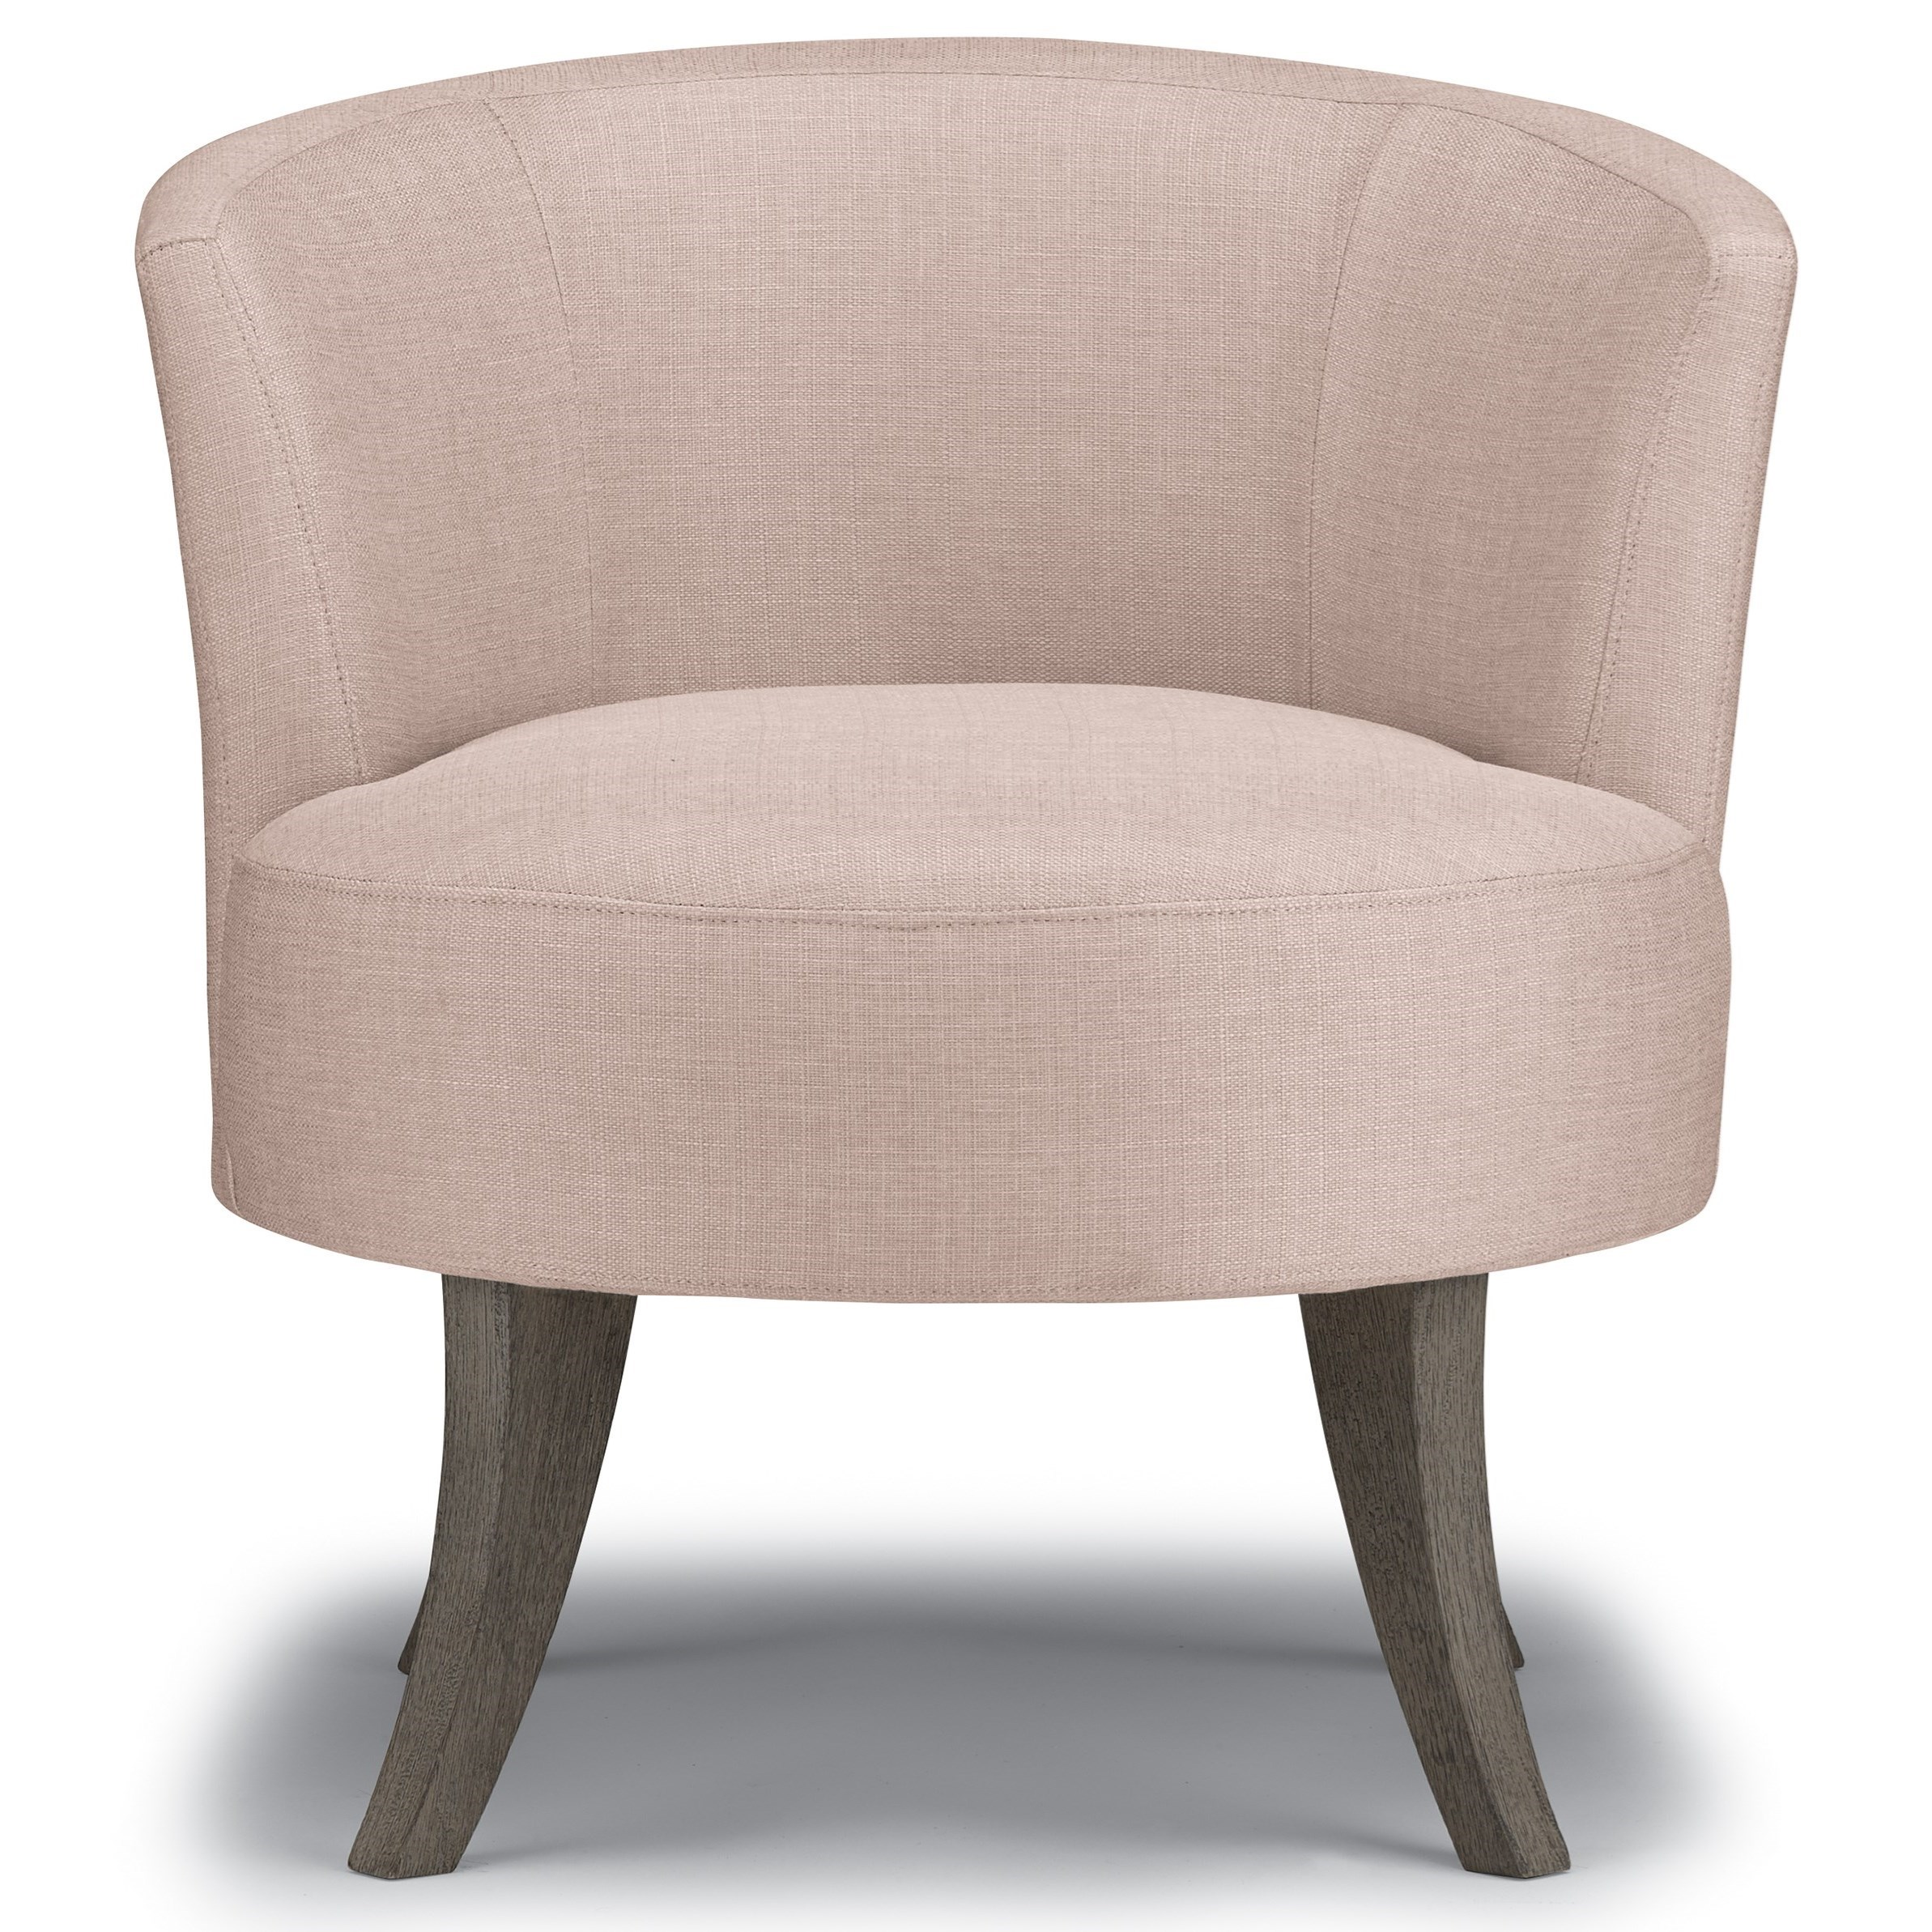 Best Xpress - Steffen Swivel Barrel Chair by Best Home Furnishings at Baer's Furniture